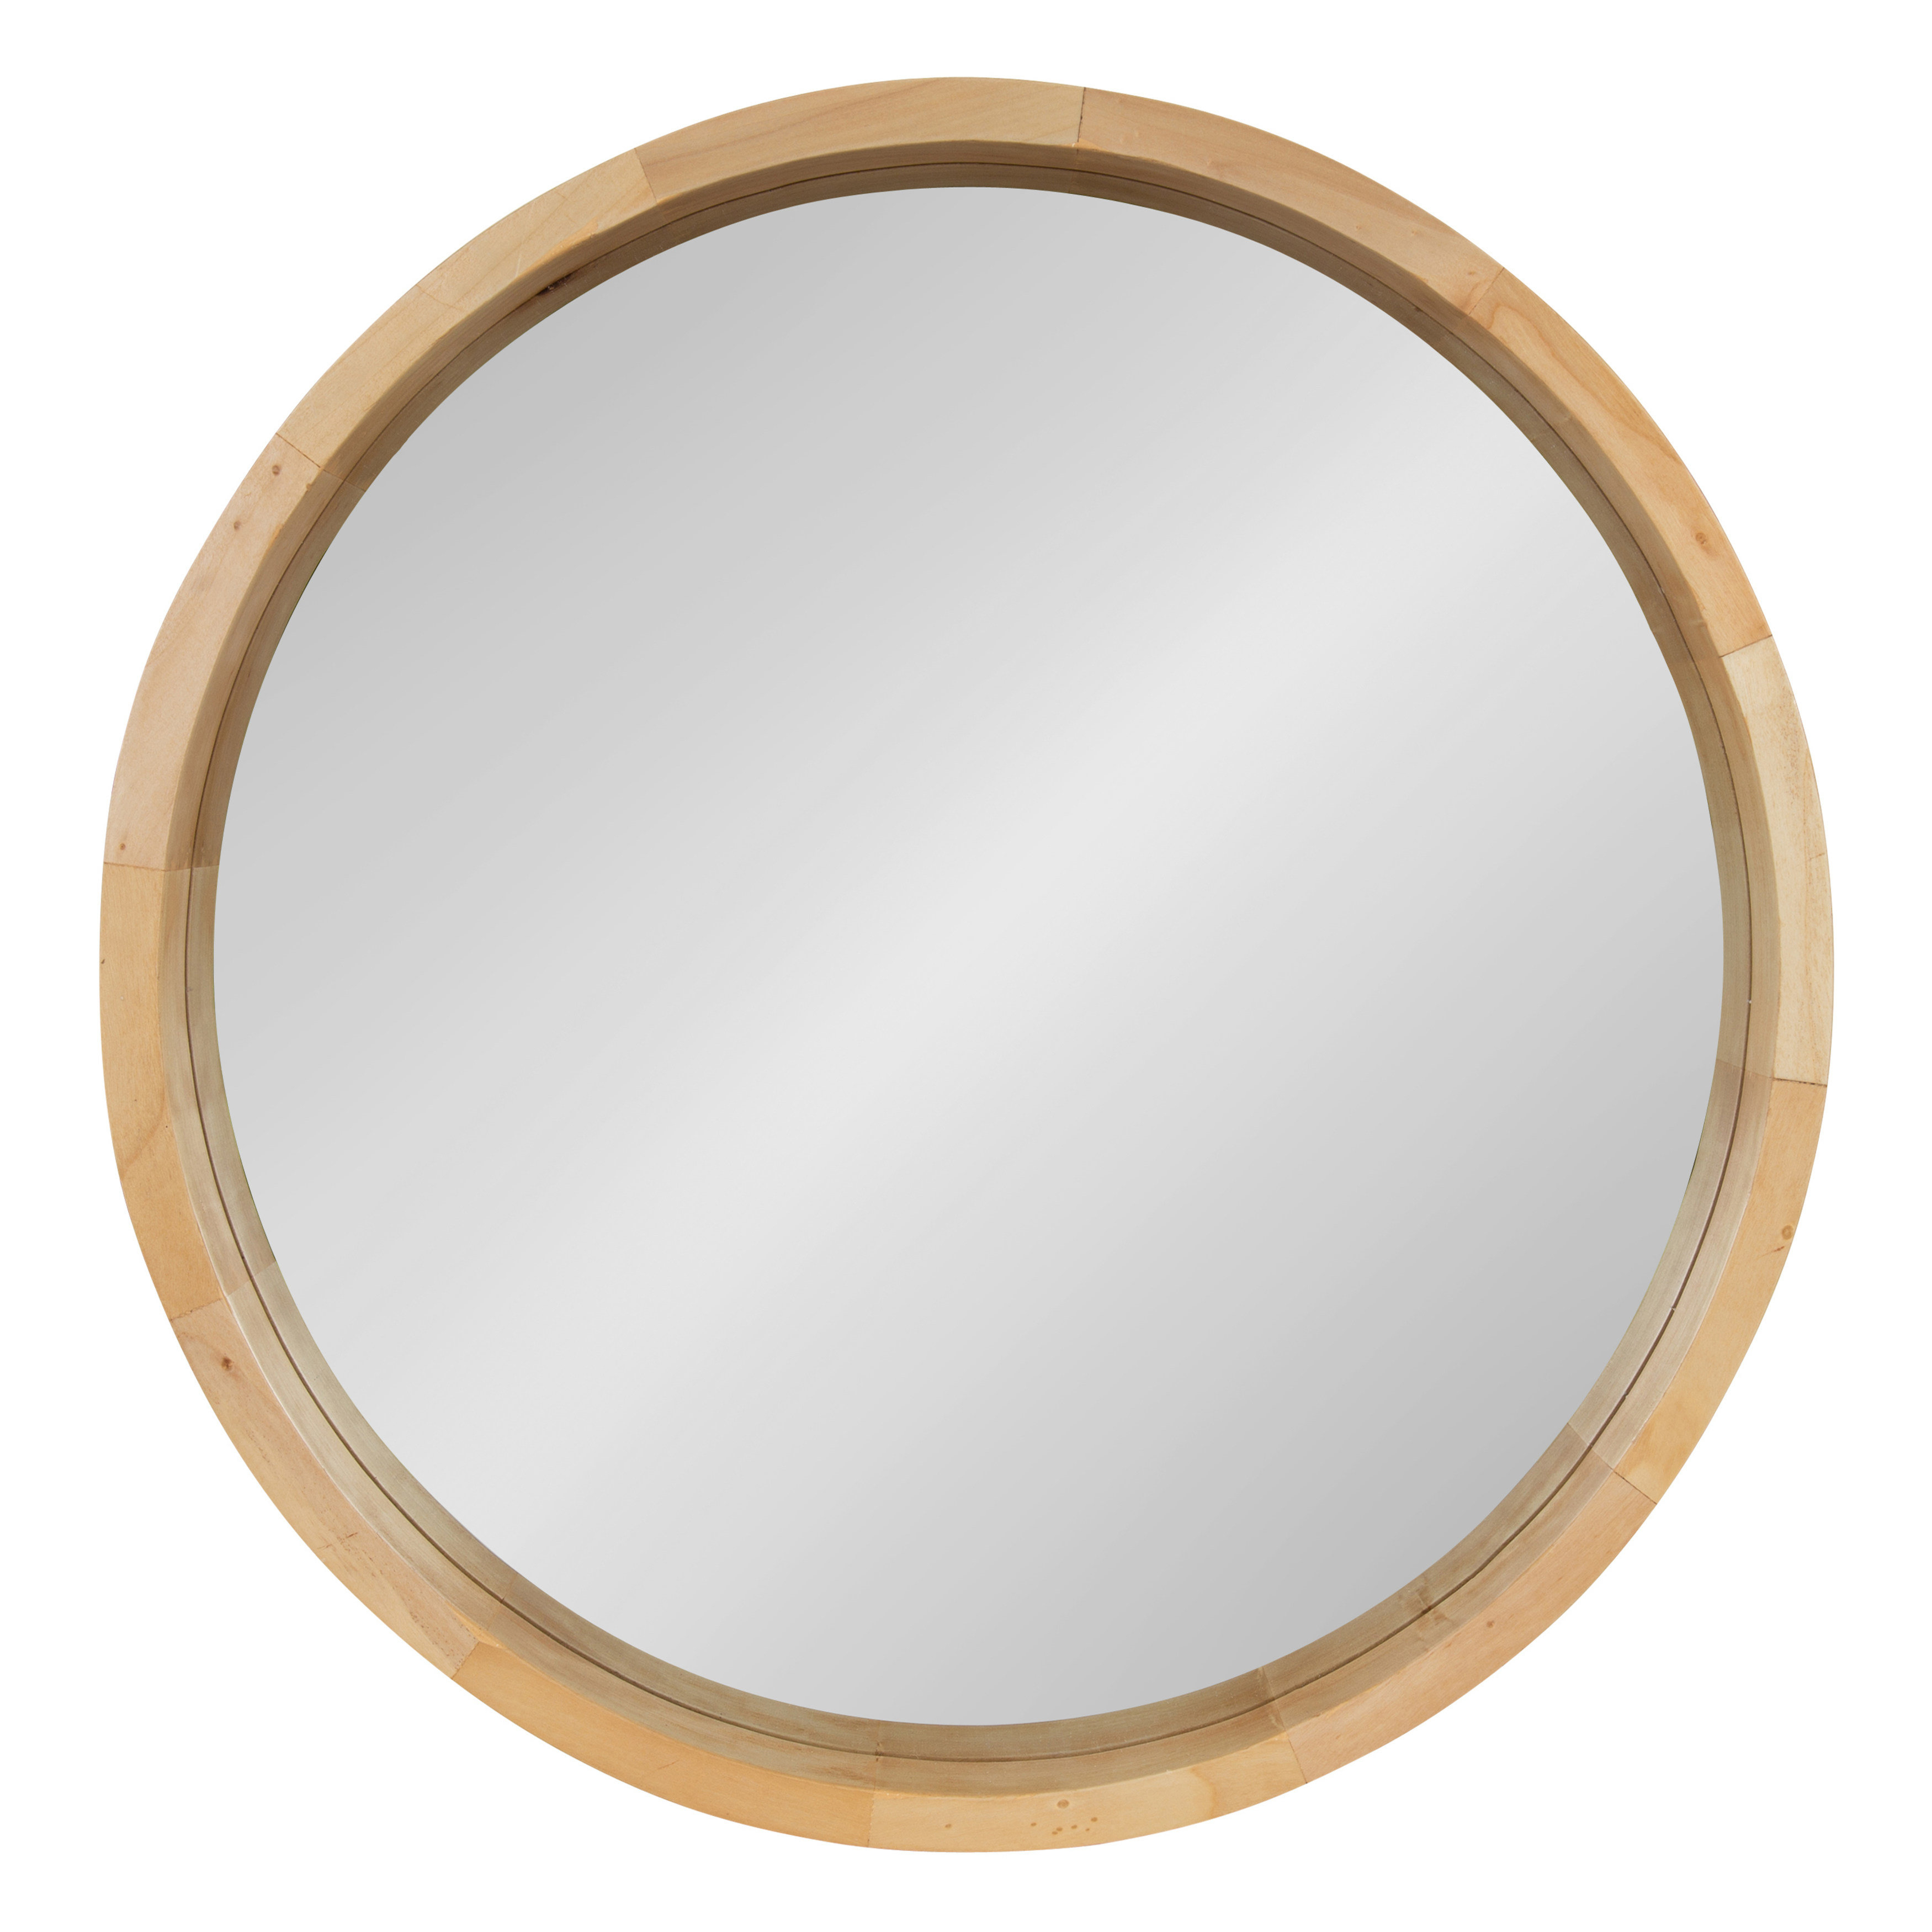 Round Natural Wood Mirror | Wayfair With Oval Wood Wall Mirrors (Gallery 5 of 30)